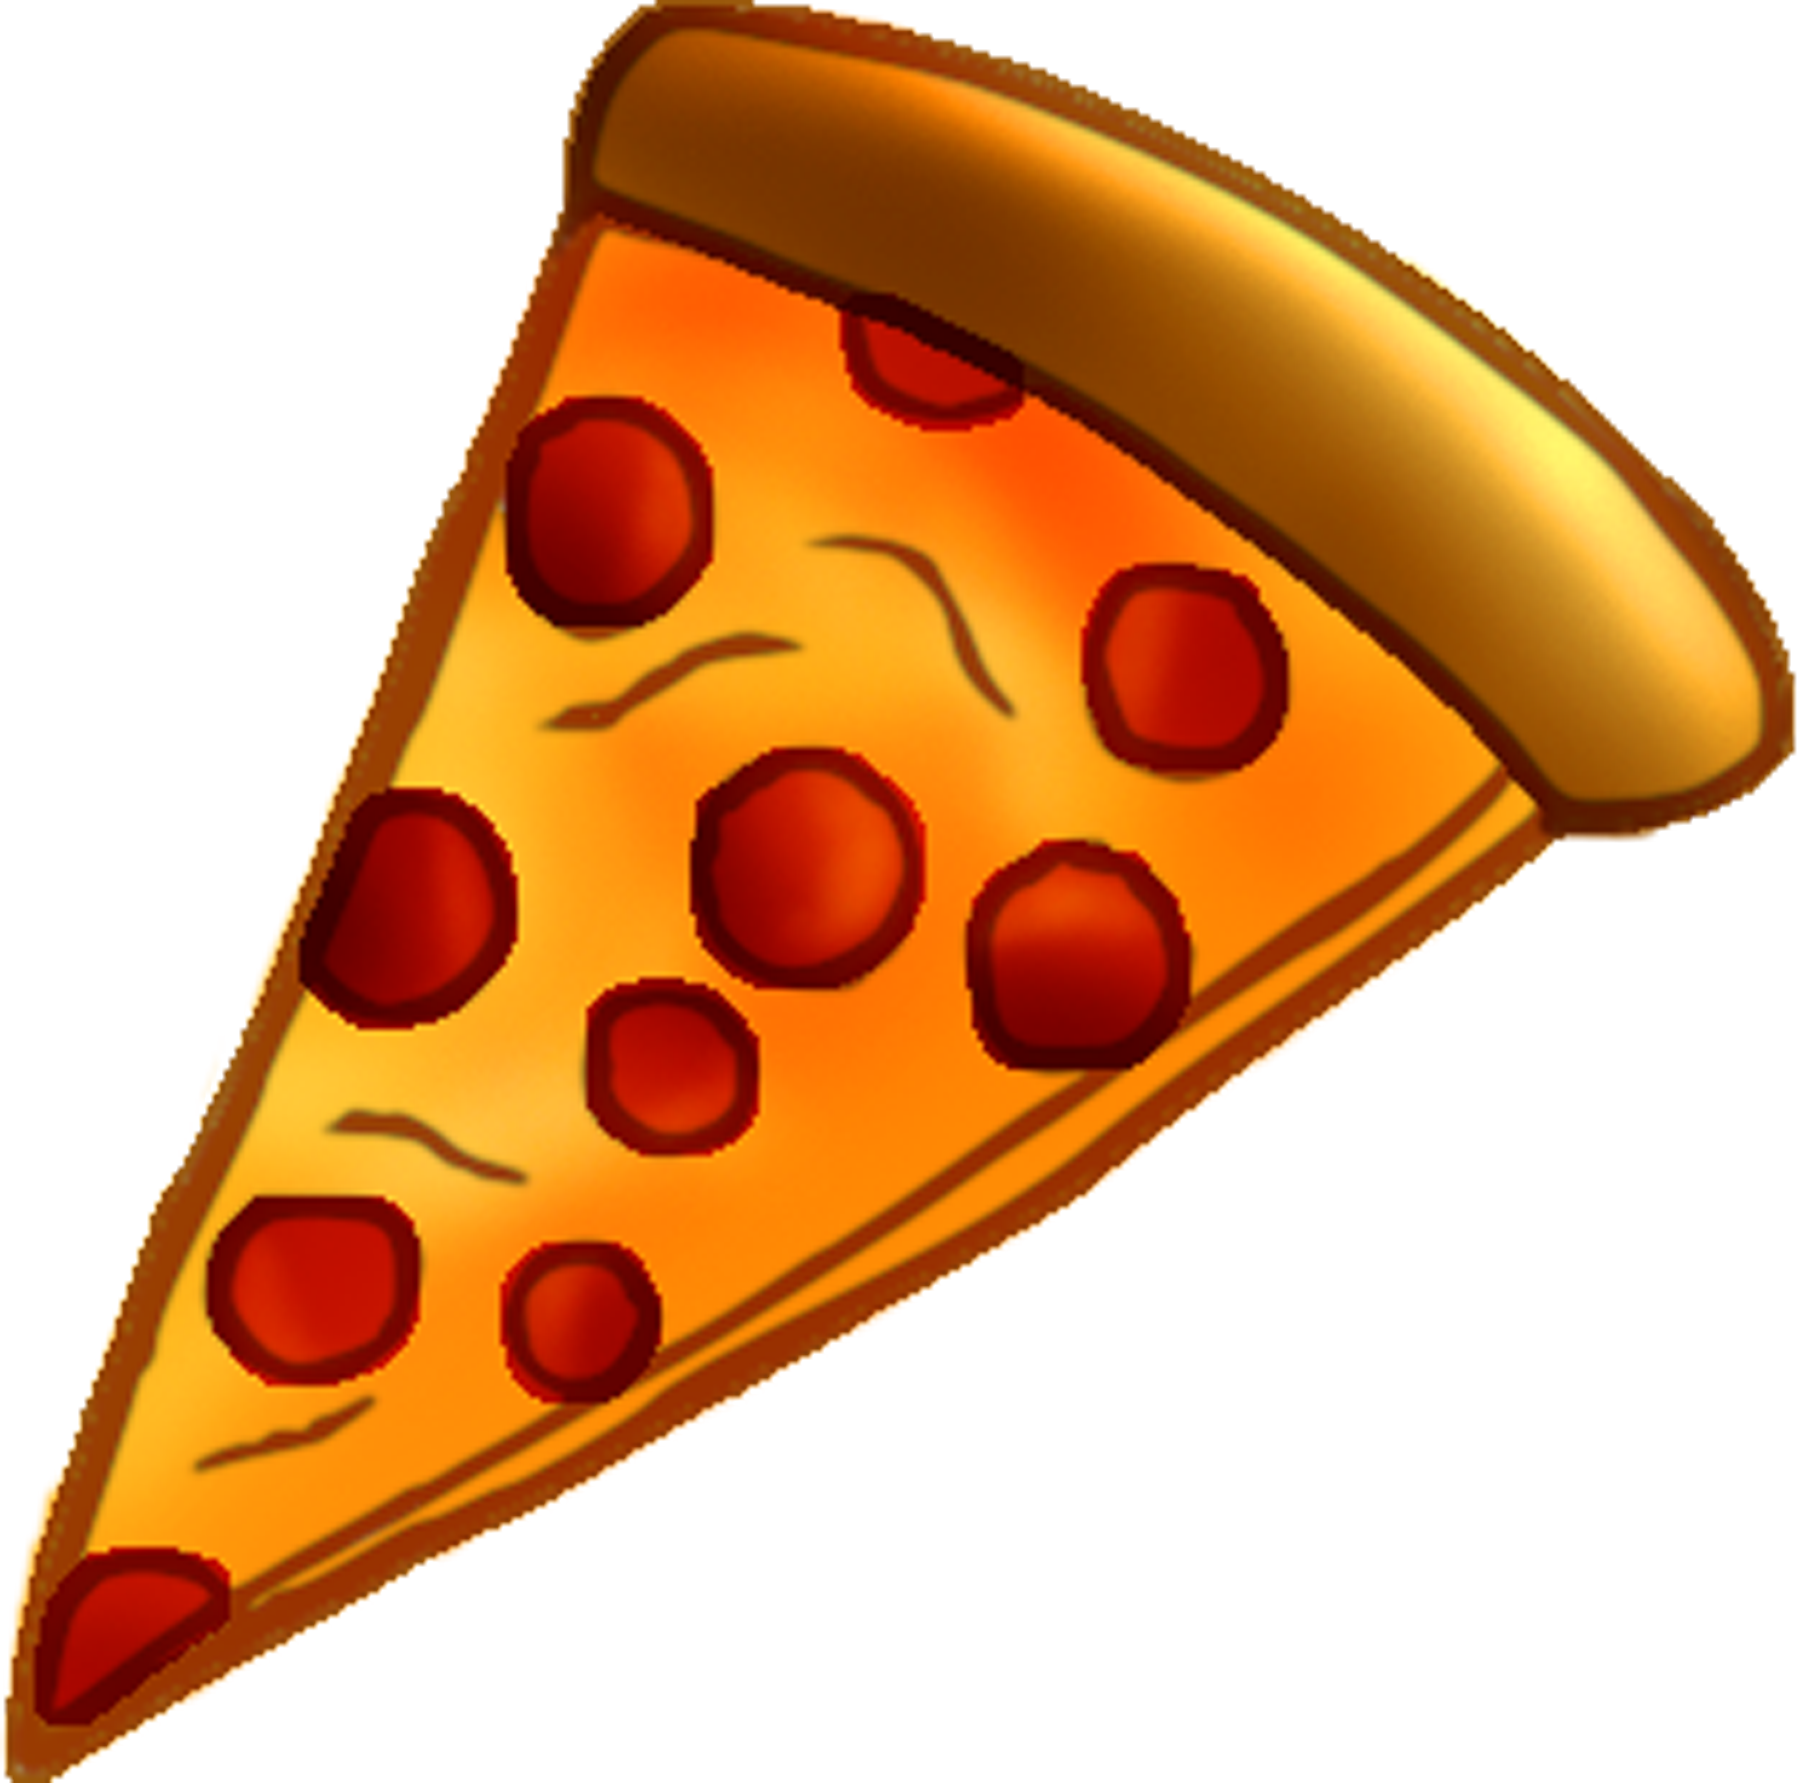 1800x1783 Pizza Clip Art Free Download Clipart Images 5